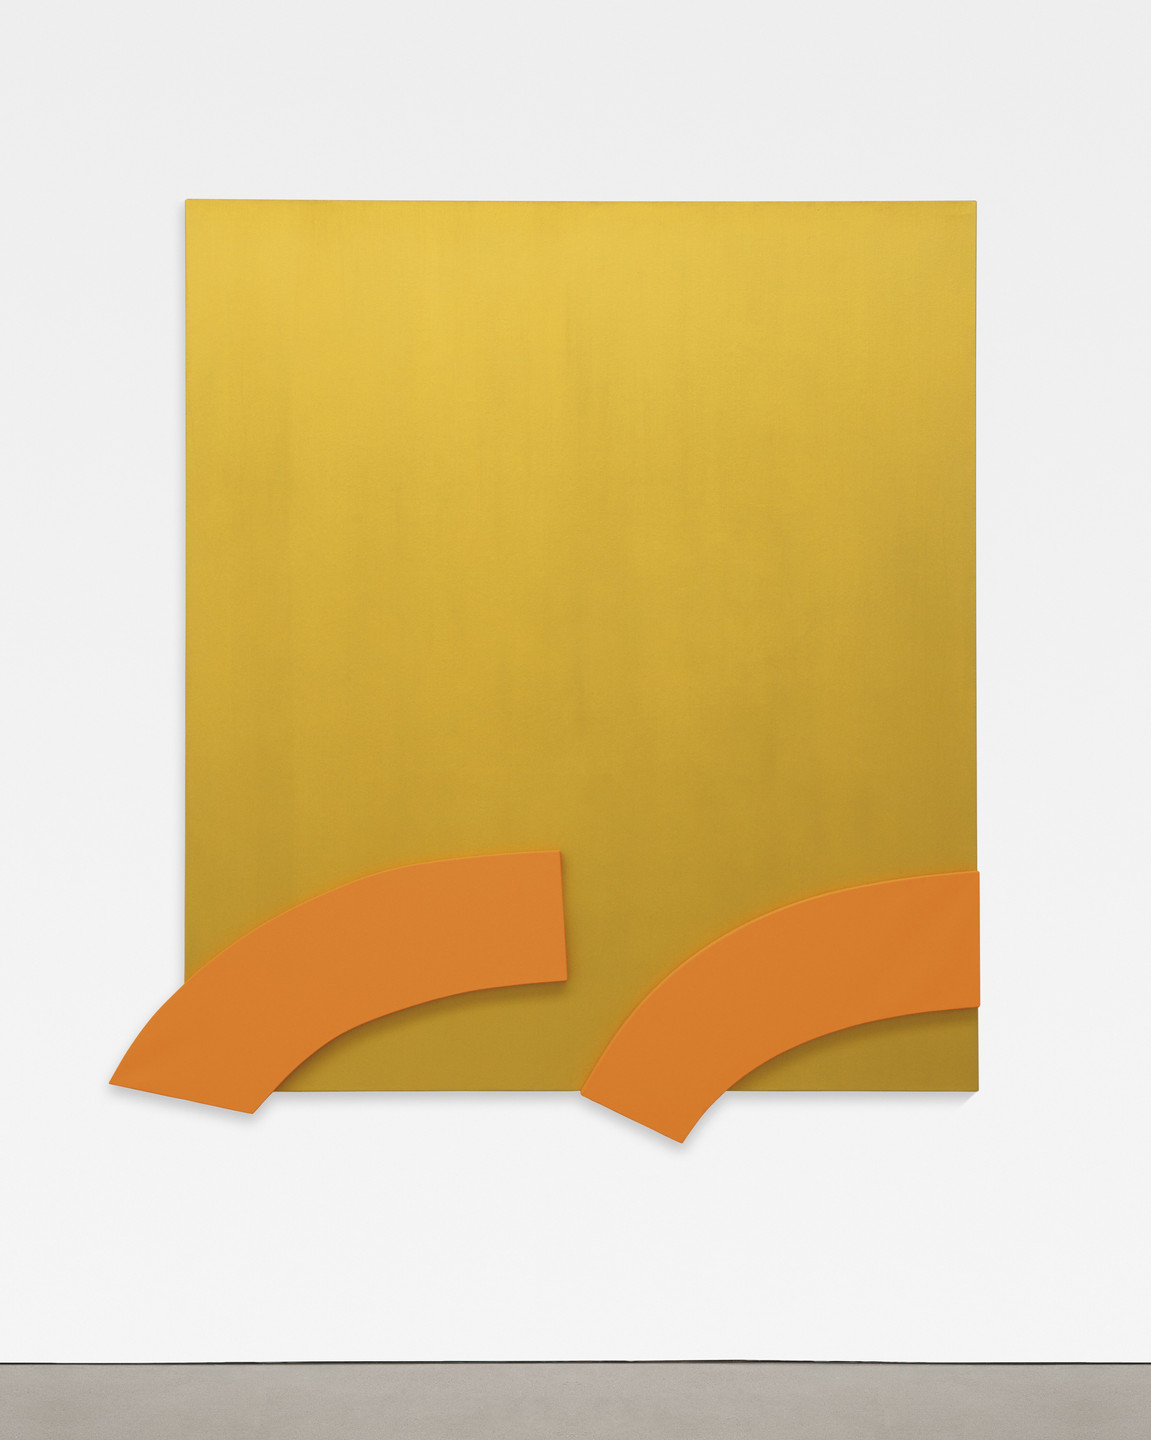 Ellsworth Kelly. Gold with Orange Reliefs. 2013